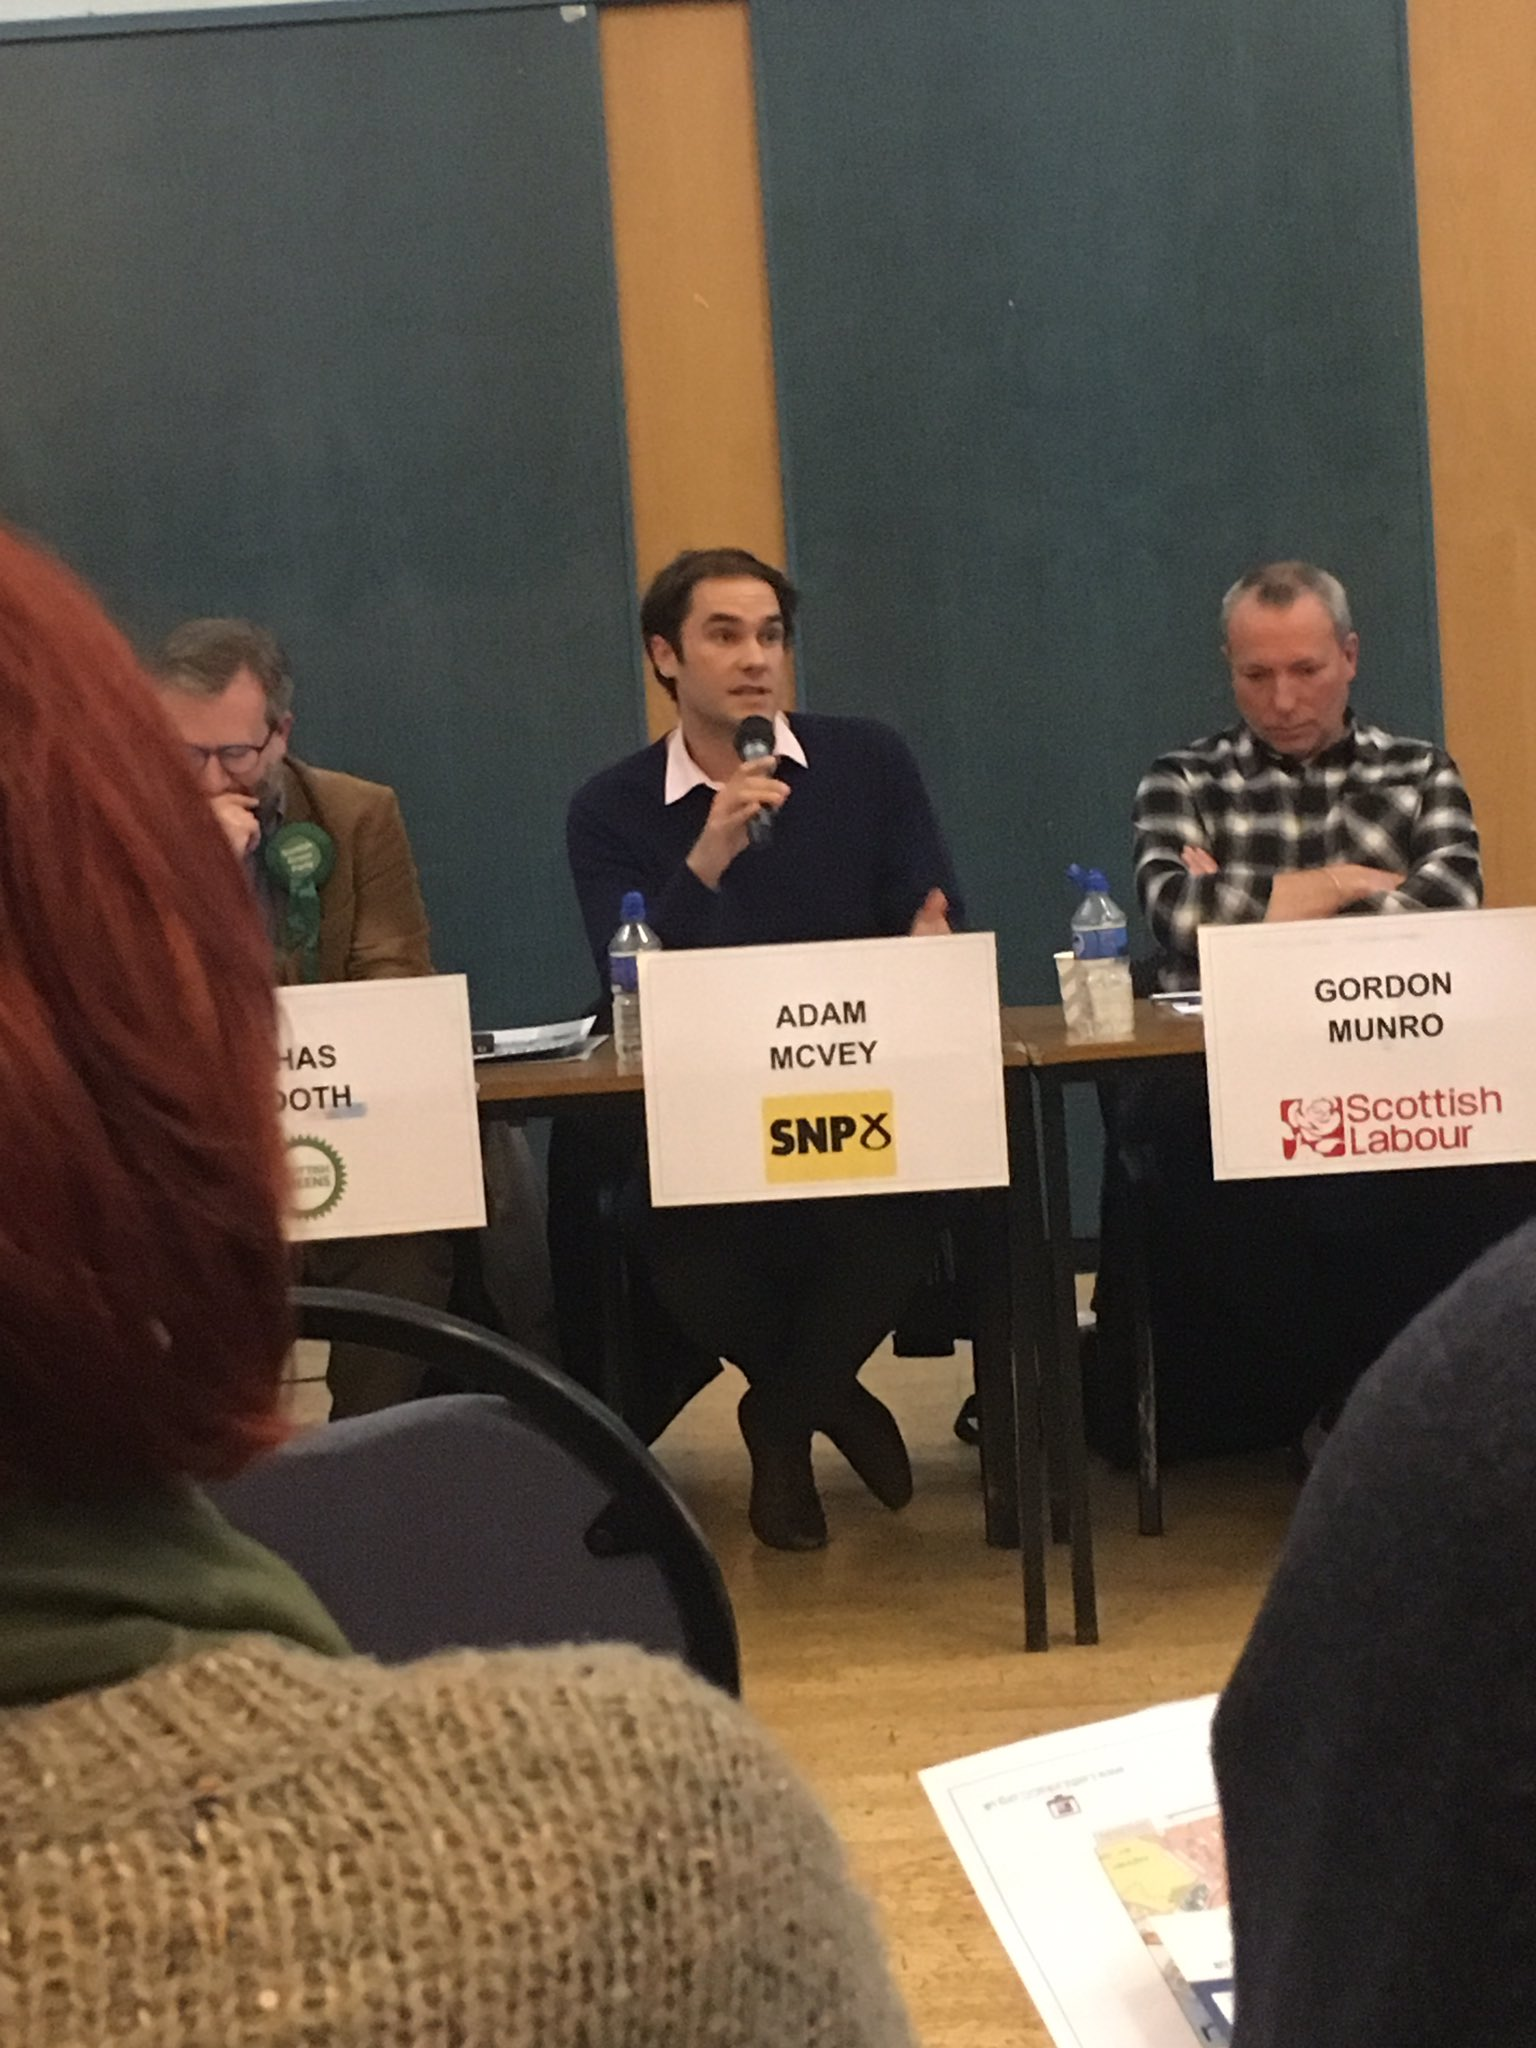 """Well, Adam McVey is correct on trams here """"the SNP have an interesting track record on trams..."""" #leithhustings https://t.co/XZG3XmlYaM"""